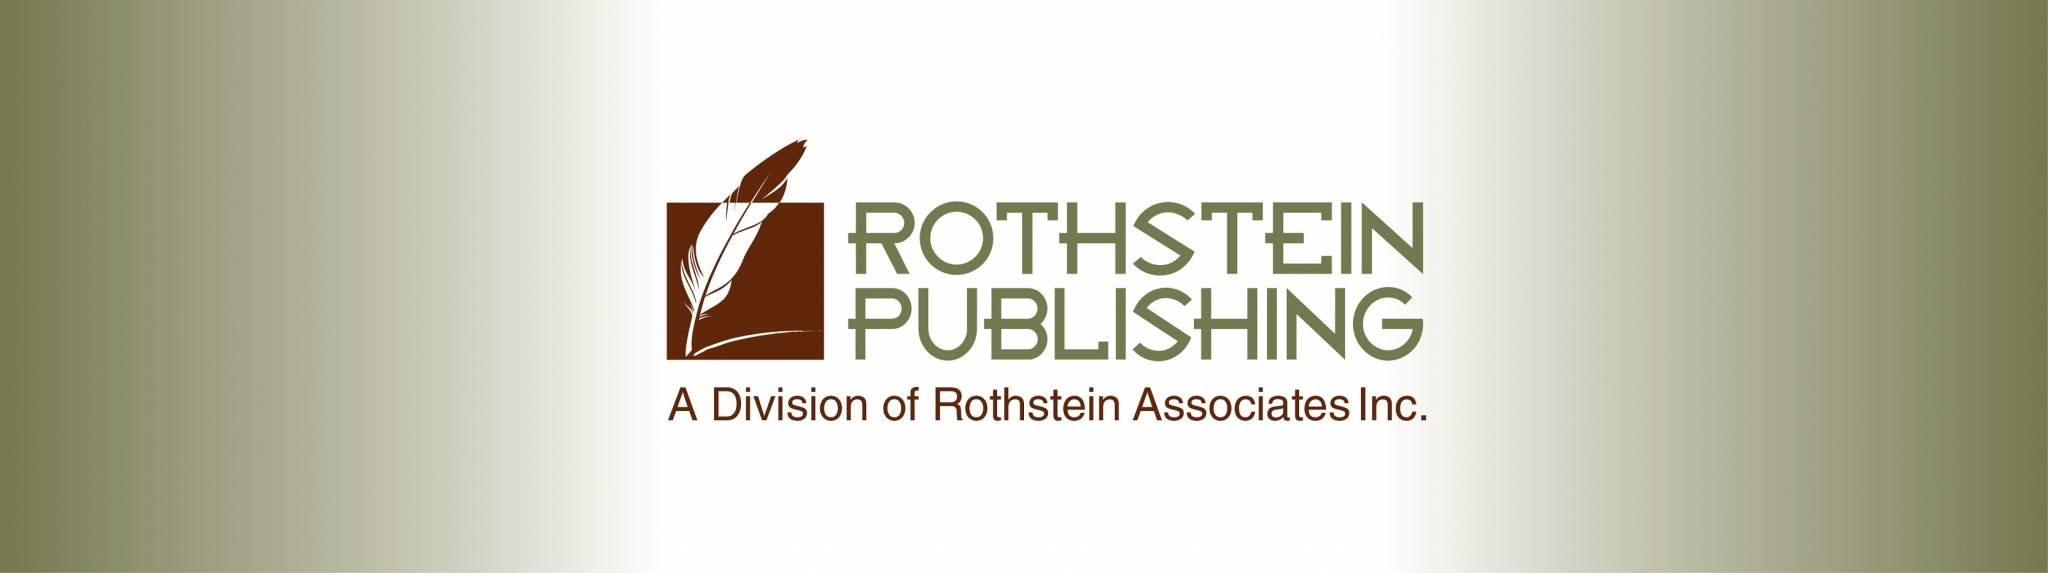 Watch for These New Books from Rothstein Publishing